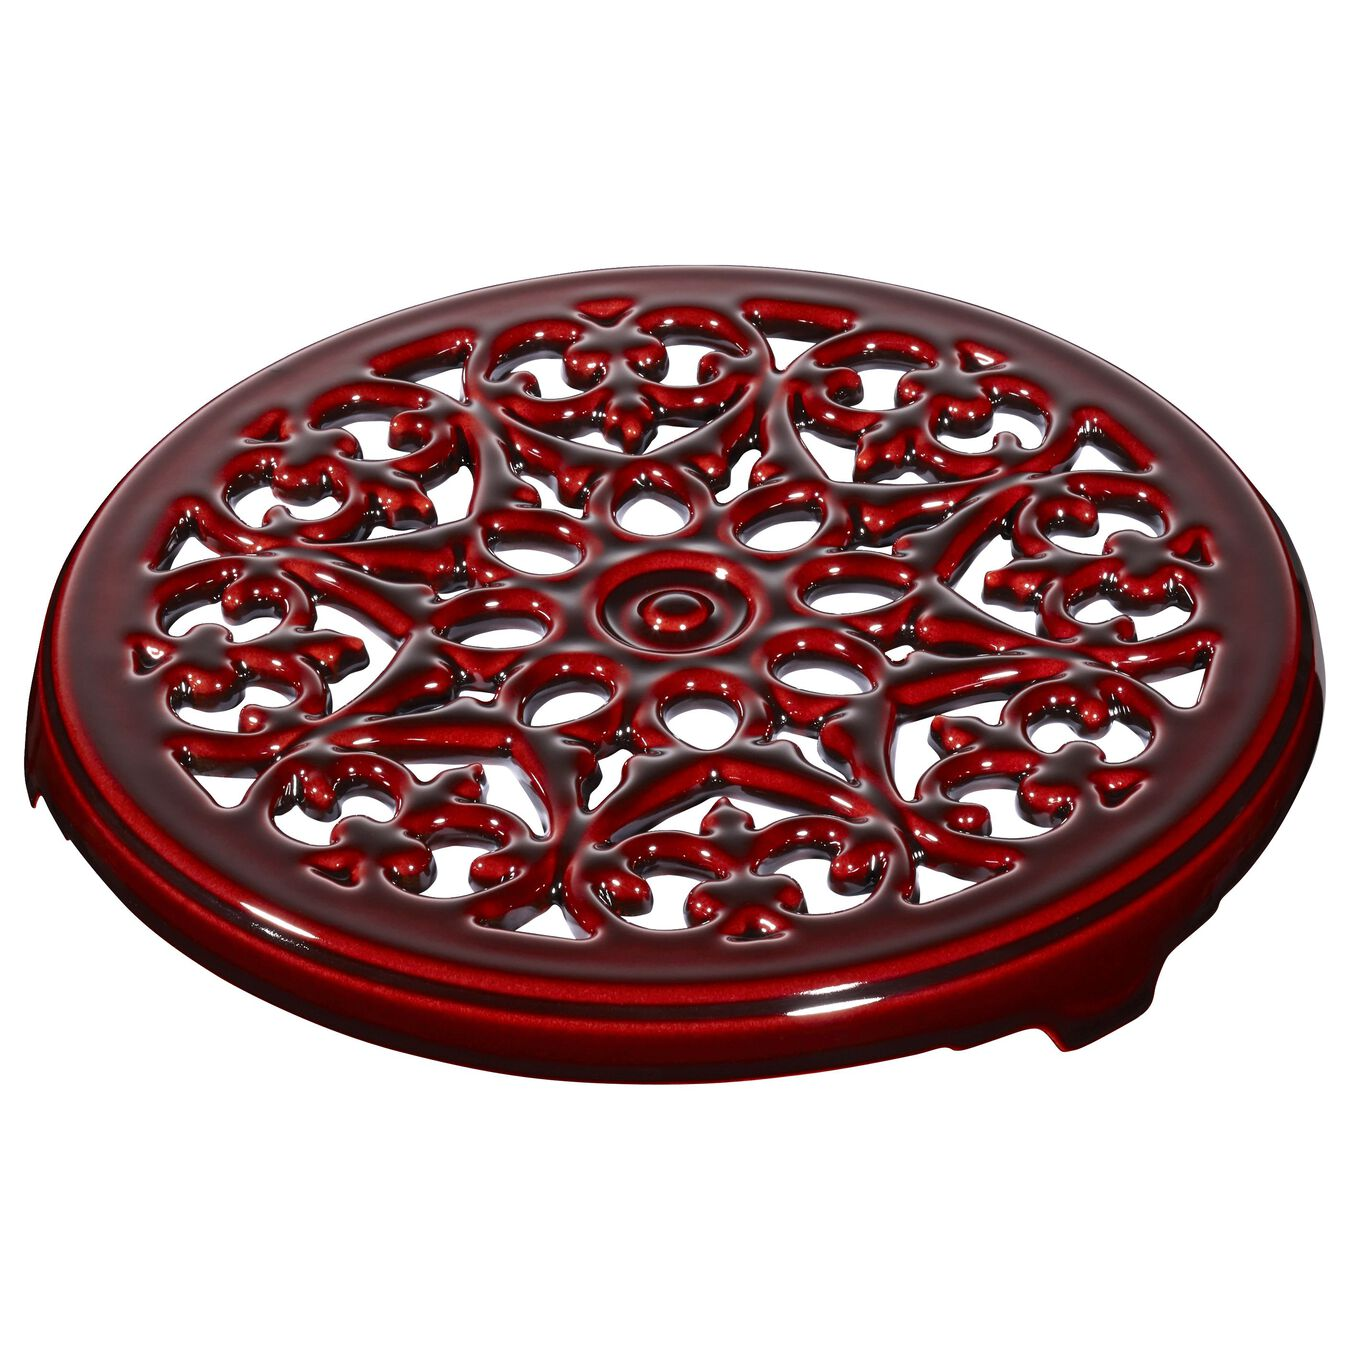 Ensemble de casseroles, 2-pcs | round | Cast iron | Grenadine-Red,,large 3